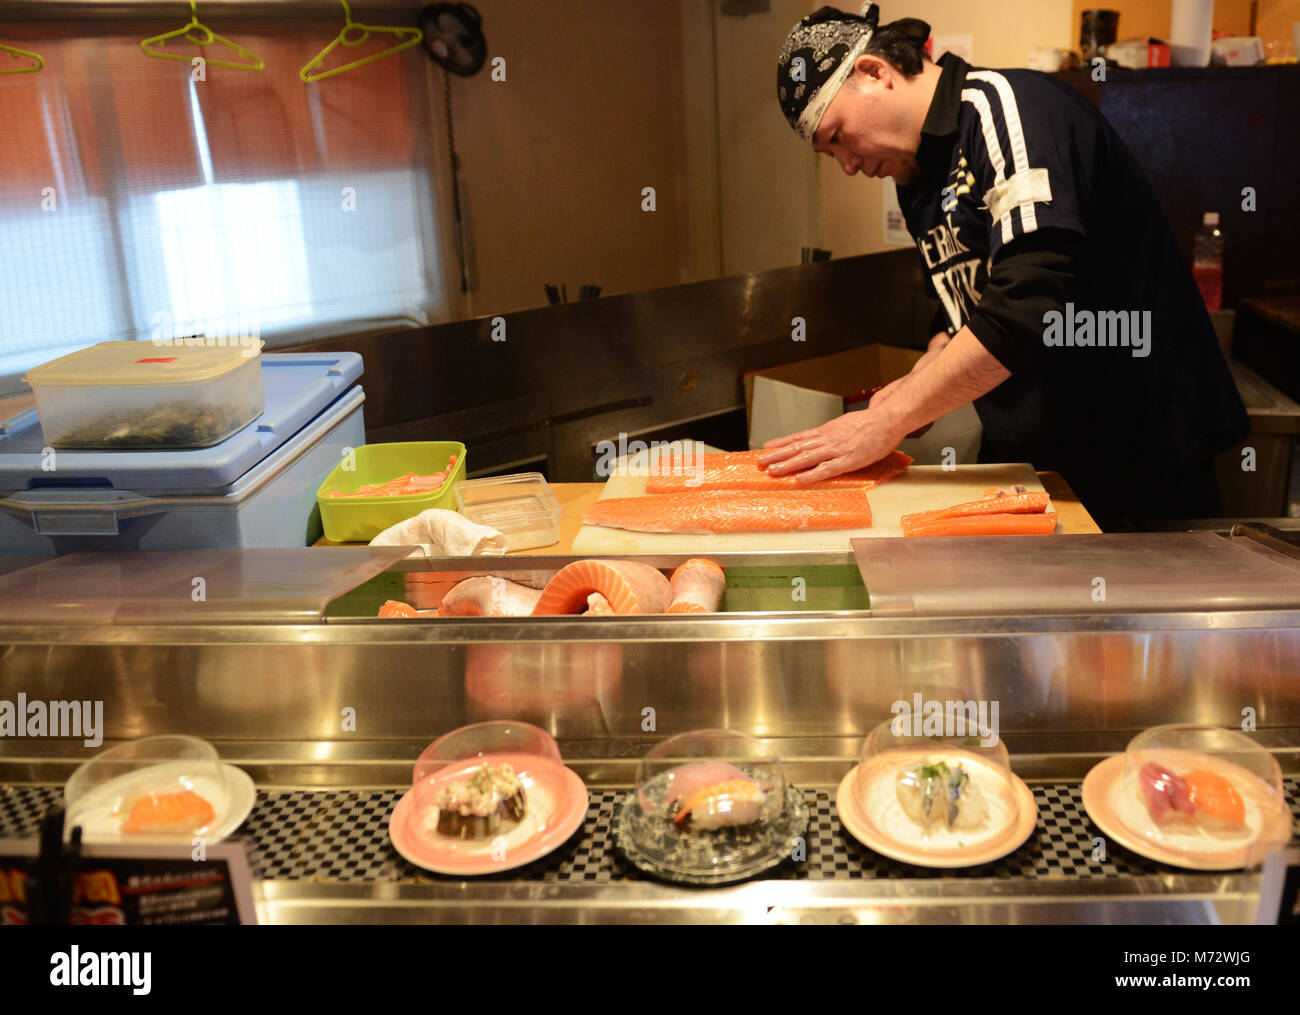 A Sushi chef cutting the fish. - Stock Image